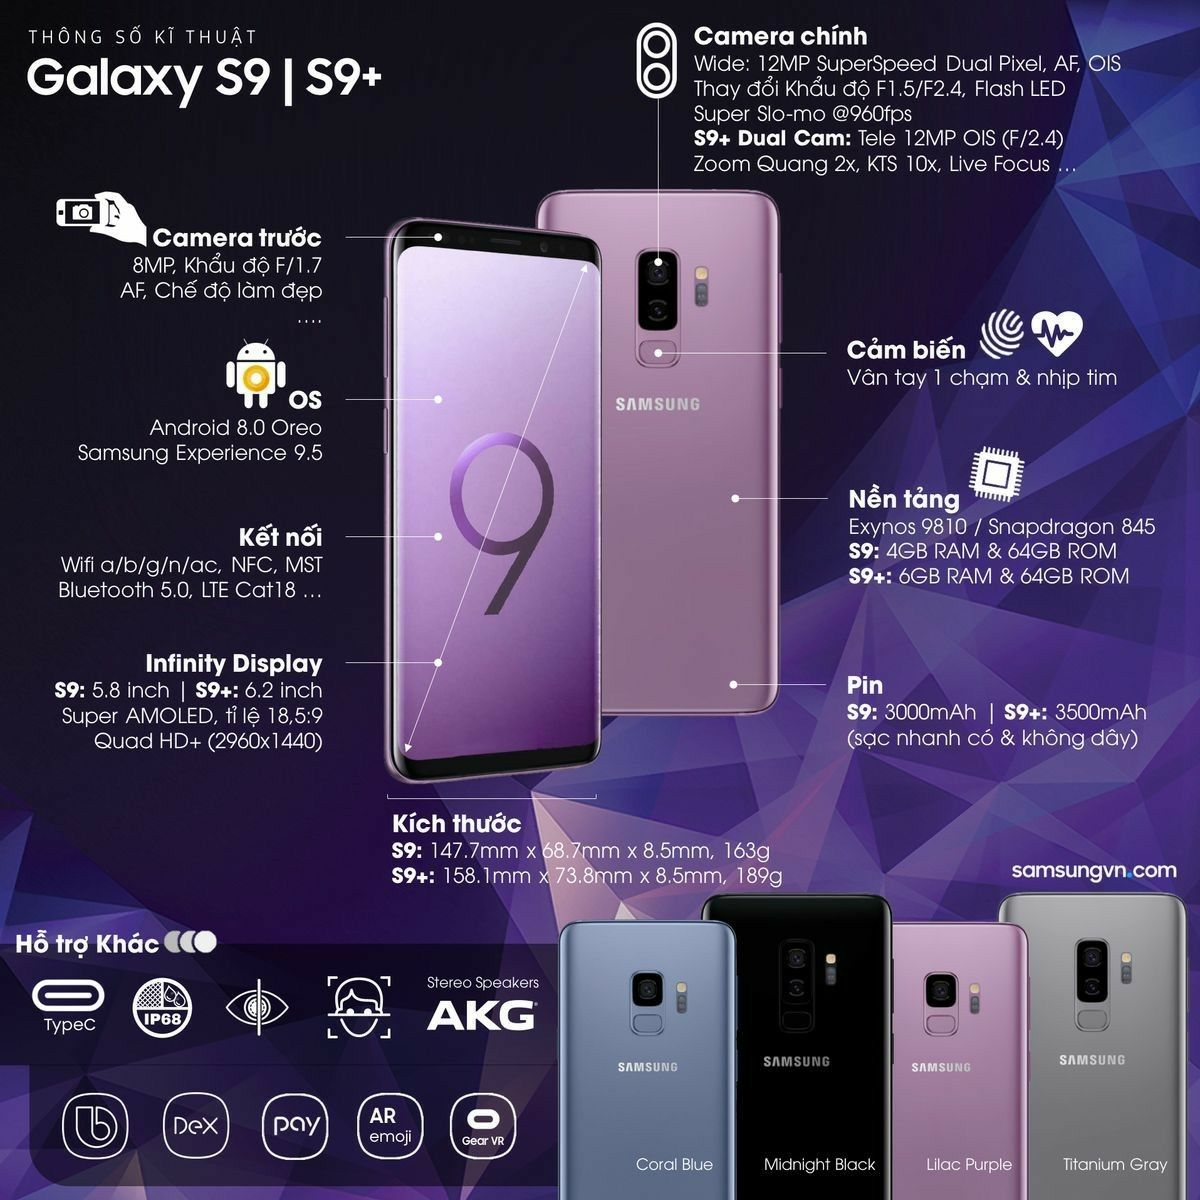 samsung galaxy s9 2019 specification